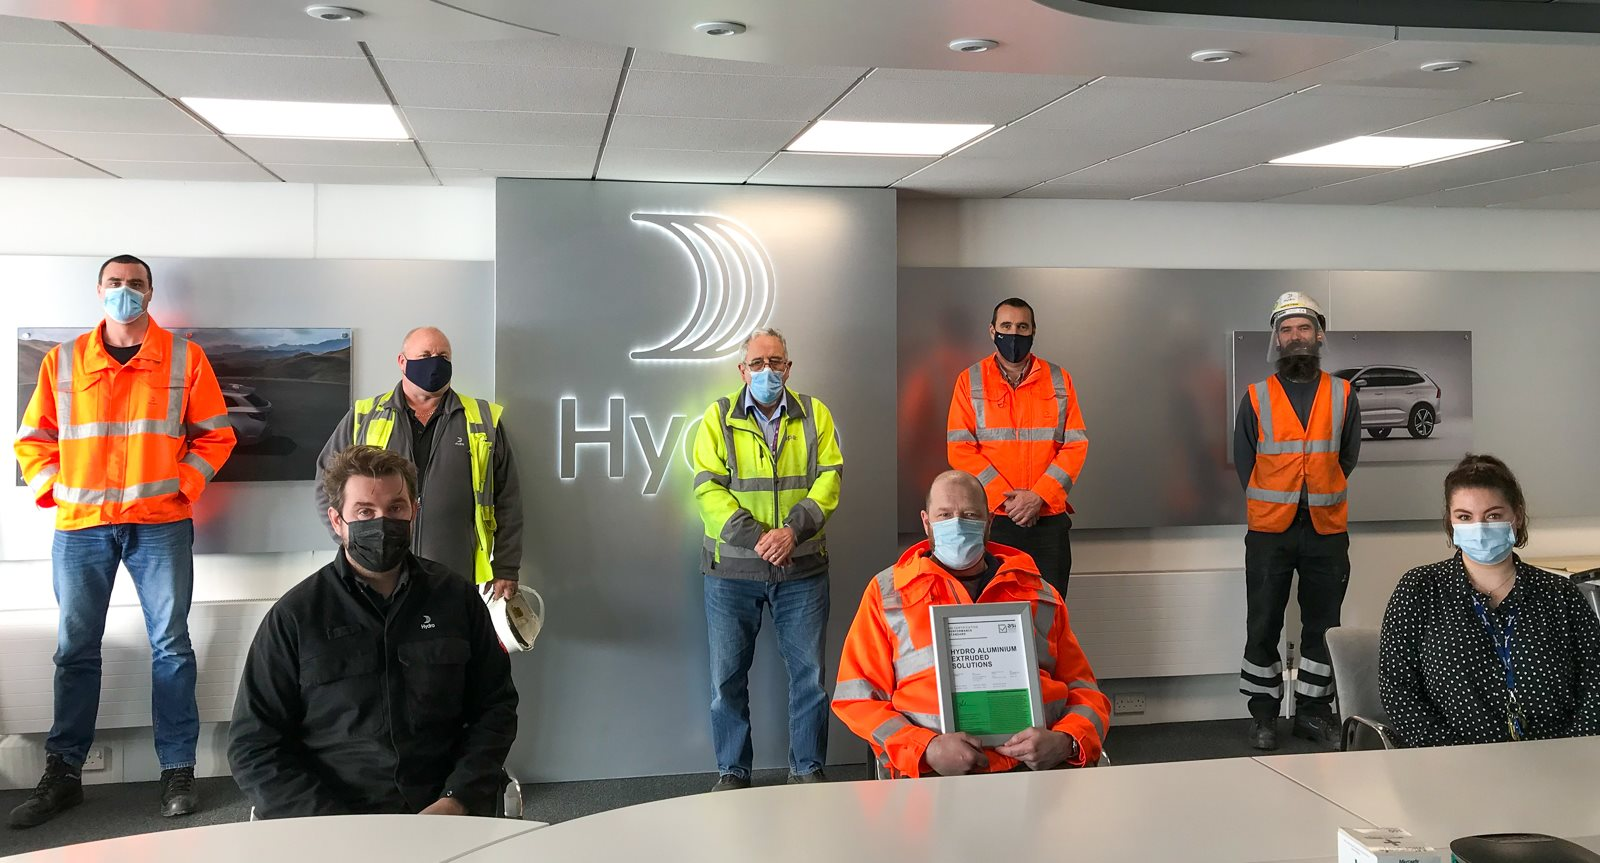 Employees at Hydro's Gloucester plant with social distance due to Covid19